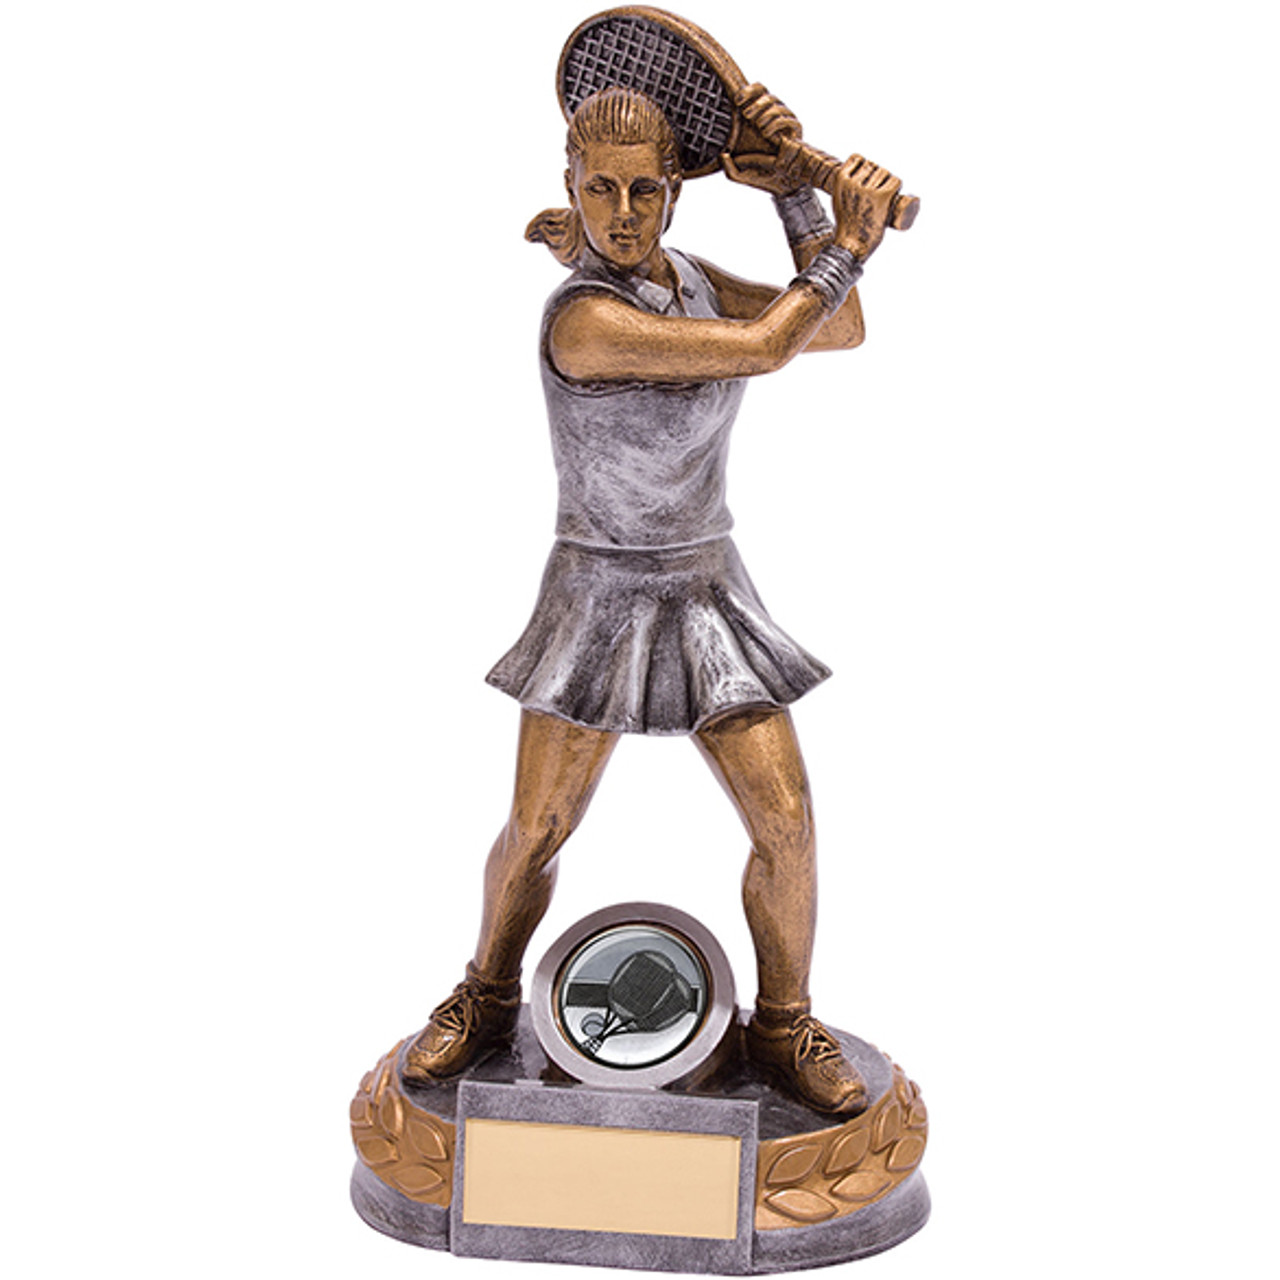 Stunning Super Ace Tennis player detailed female figure award with FREE engraving